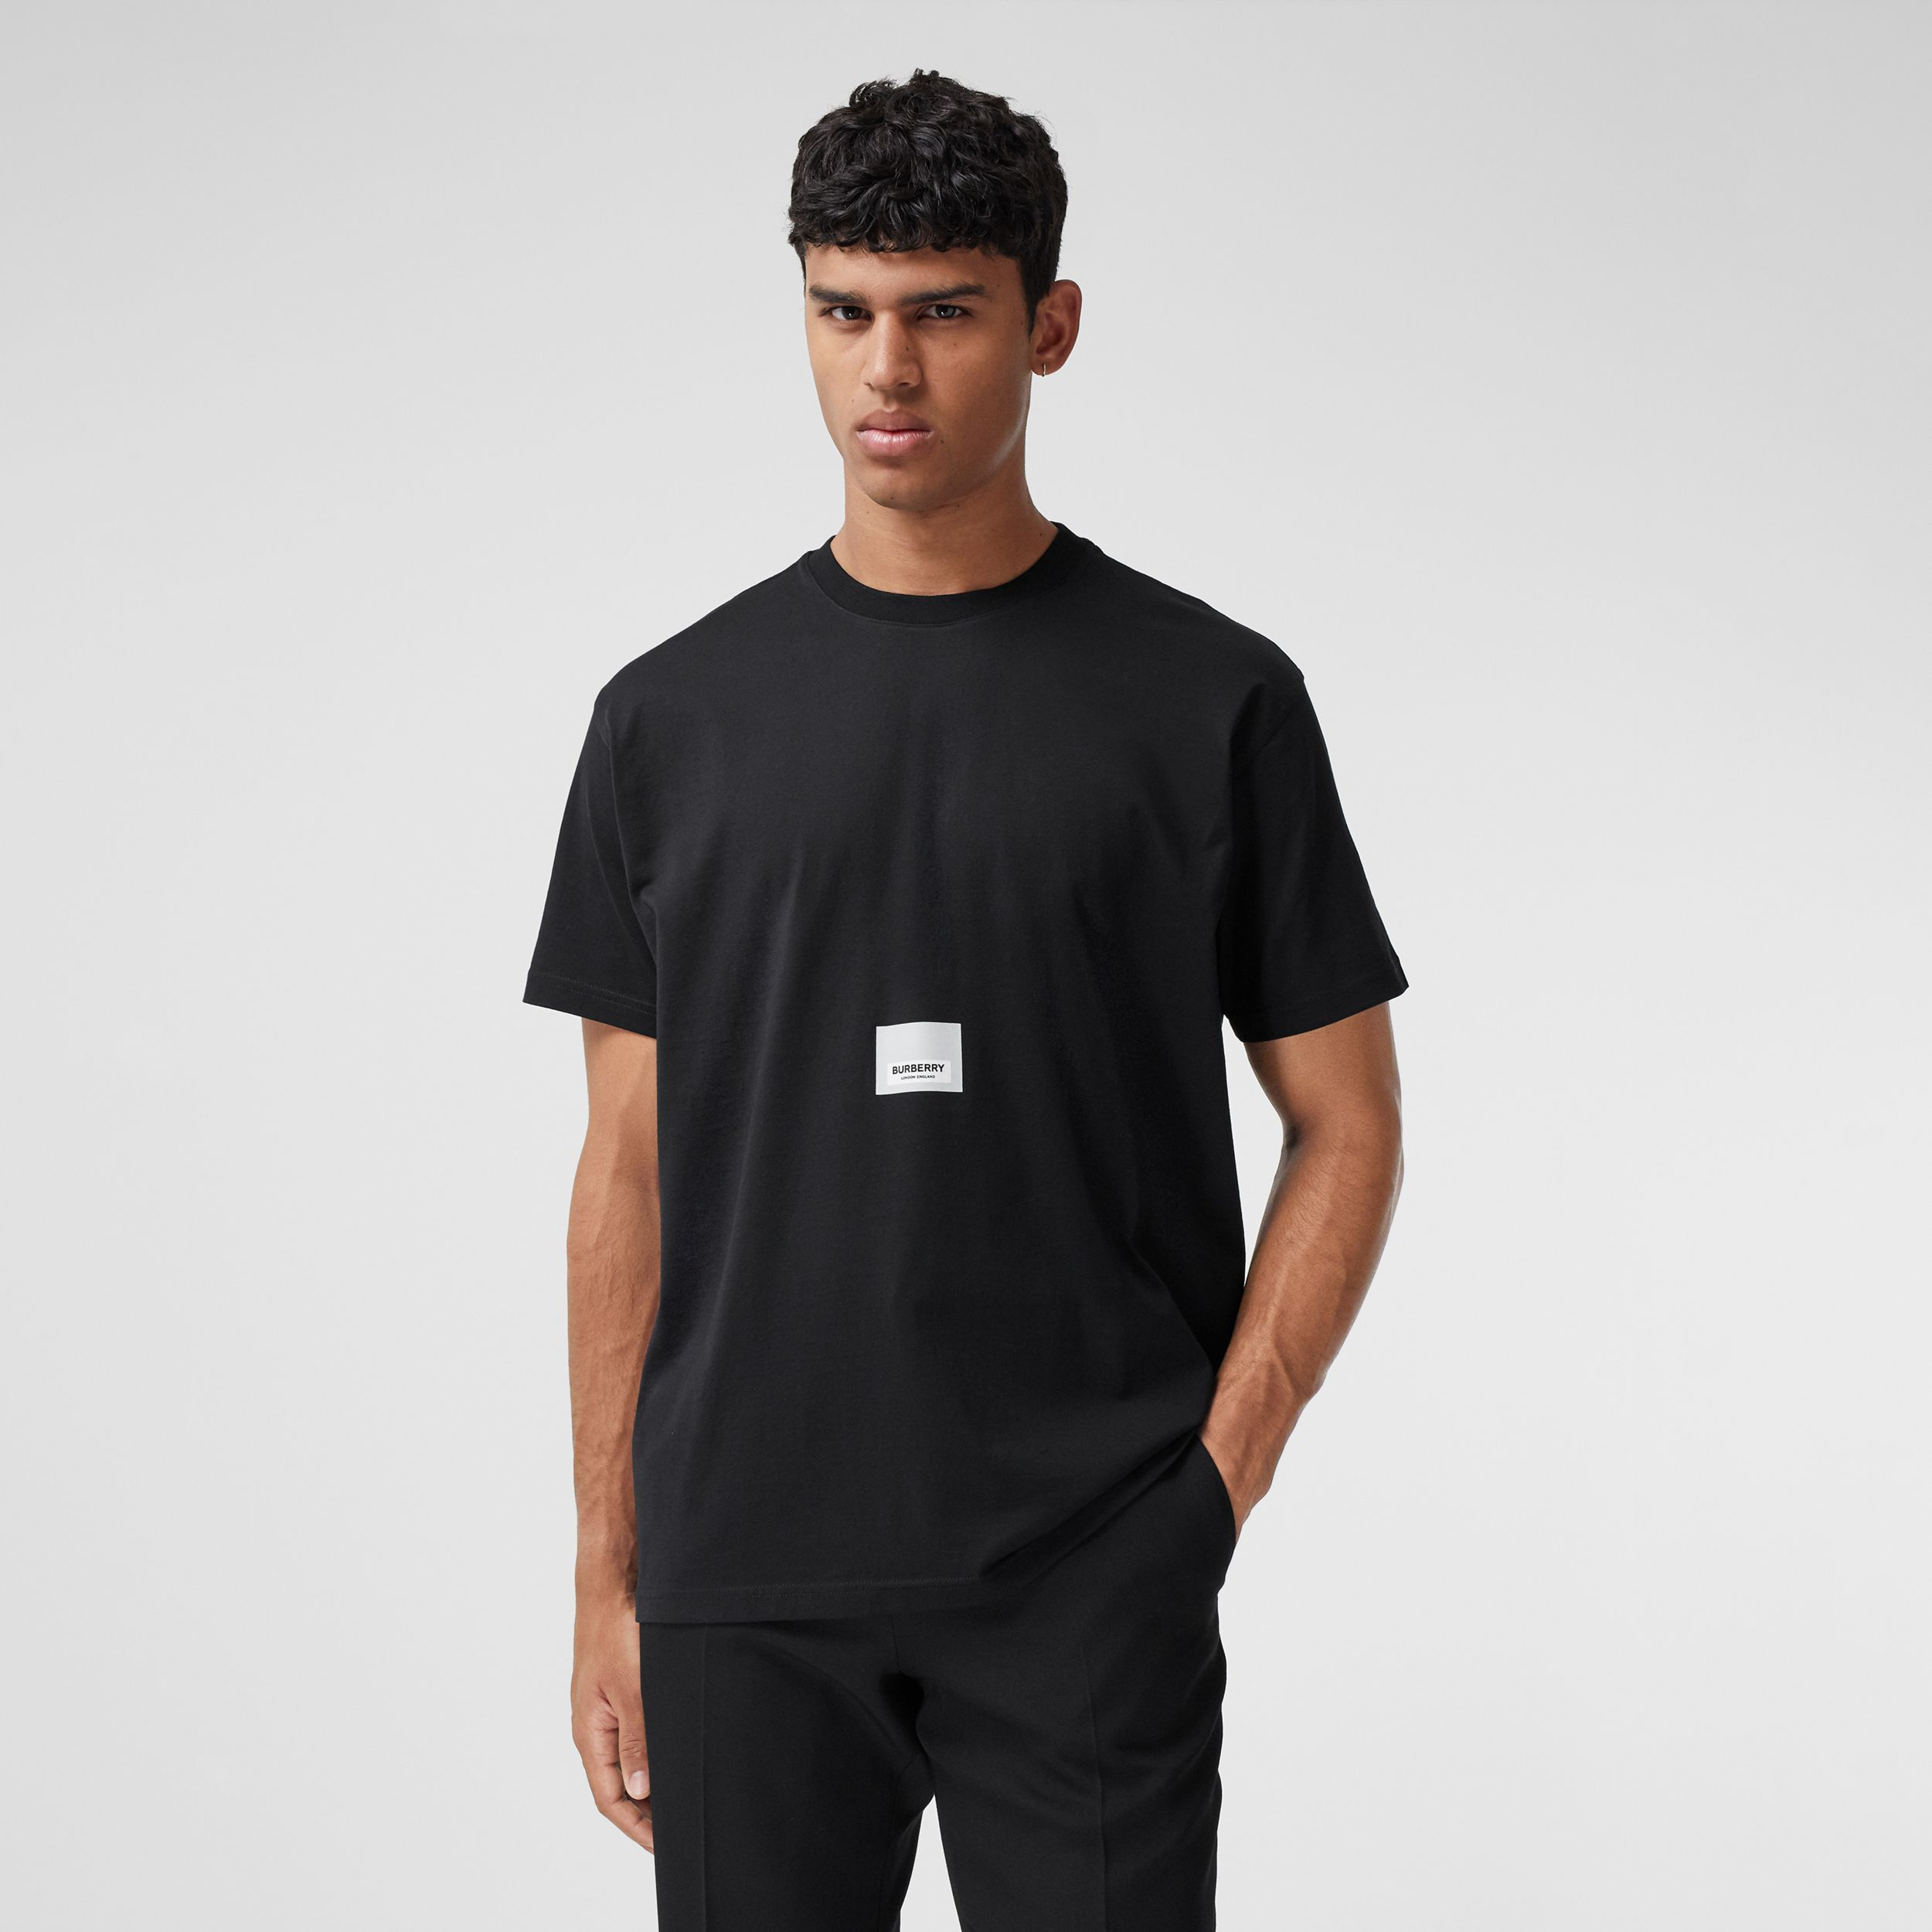 Logo Print Cotton T-shirt in Black | Burberry United States - 1